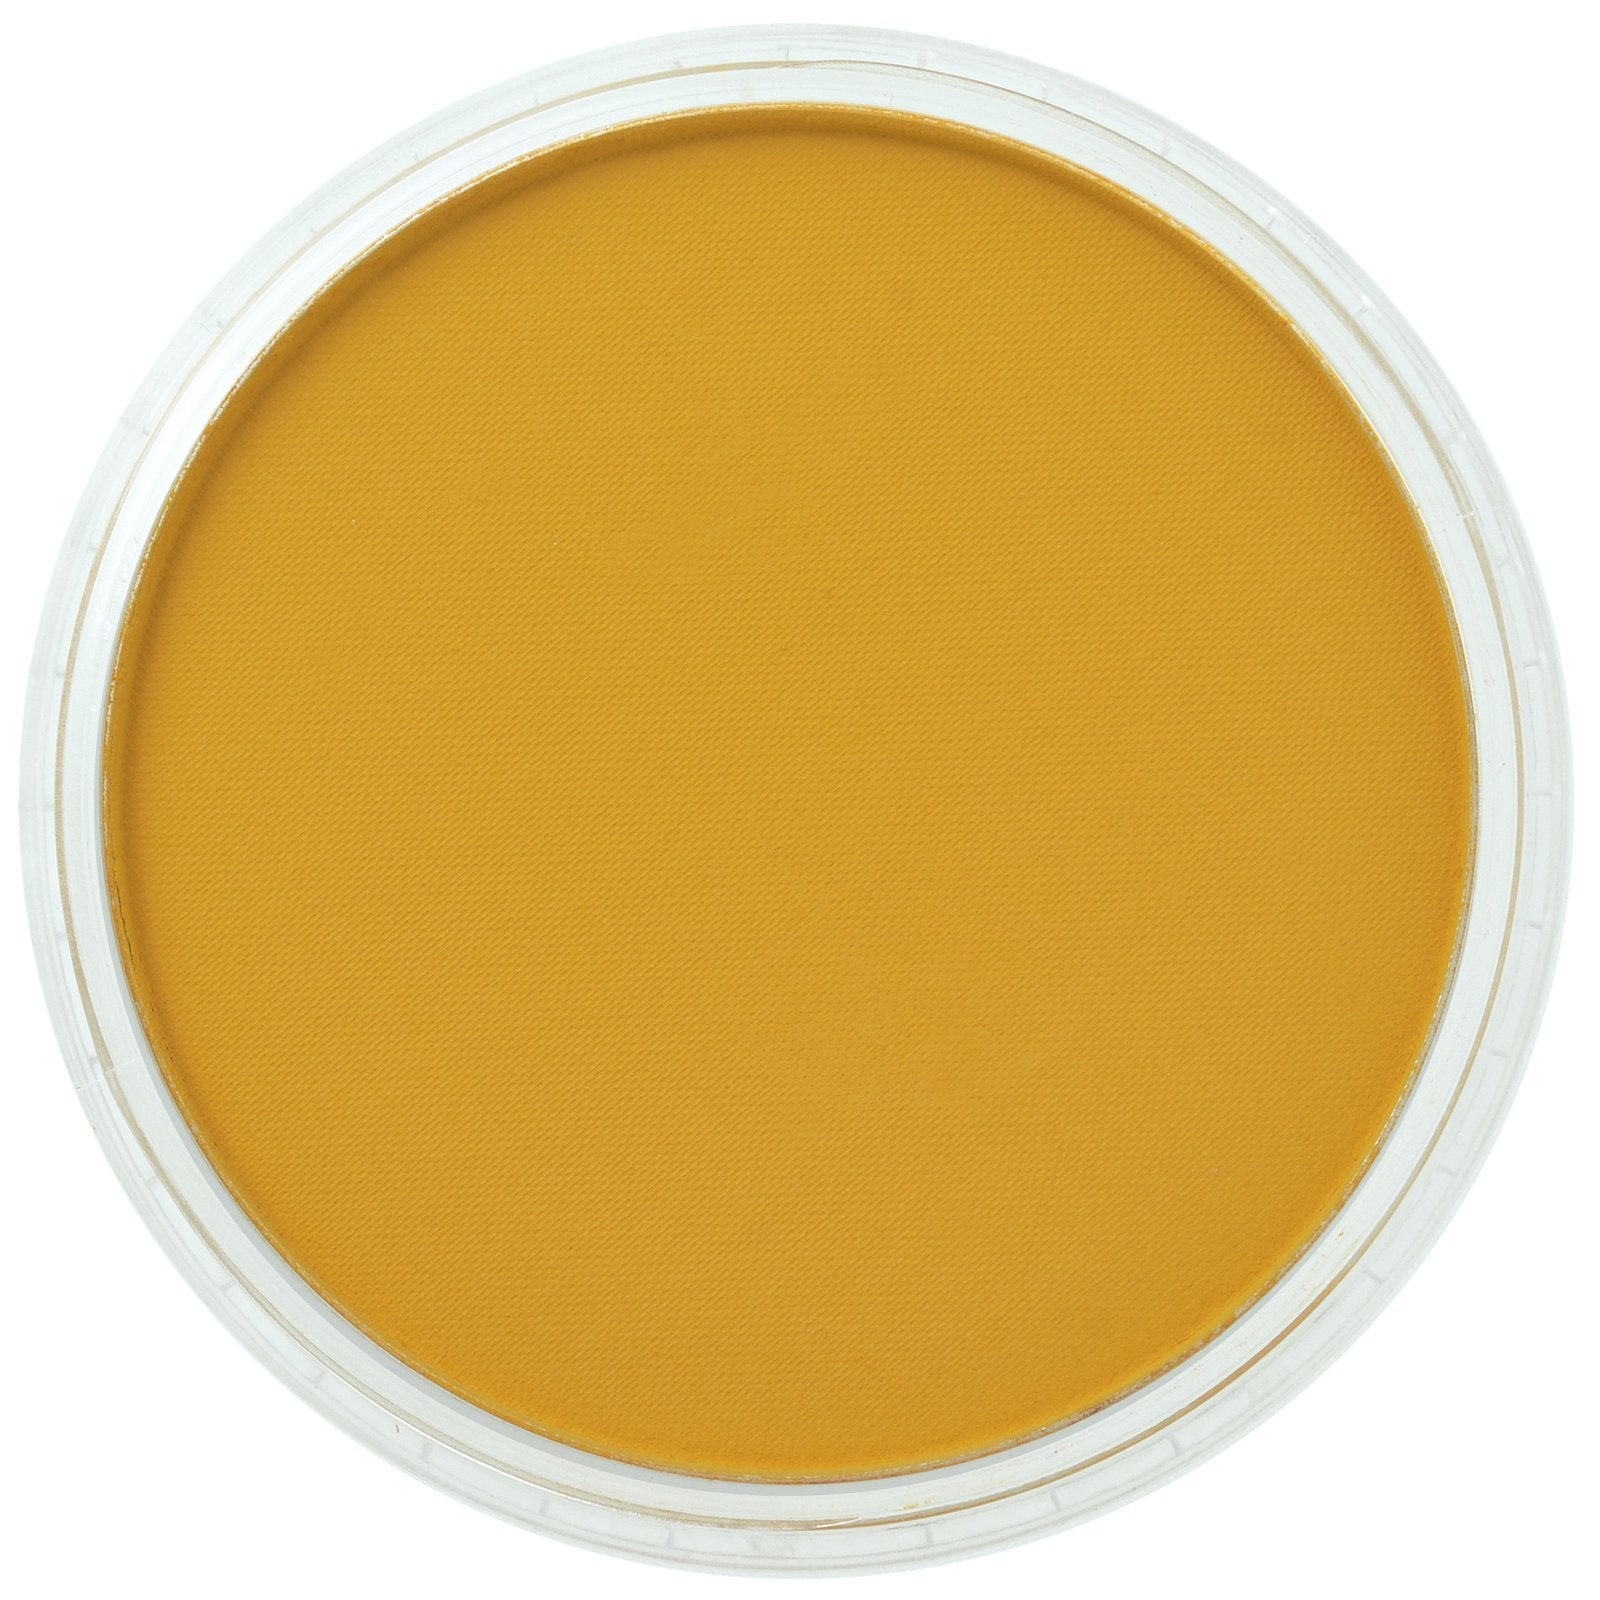 PanPastel - 270.5 YELLOW OCHRE